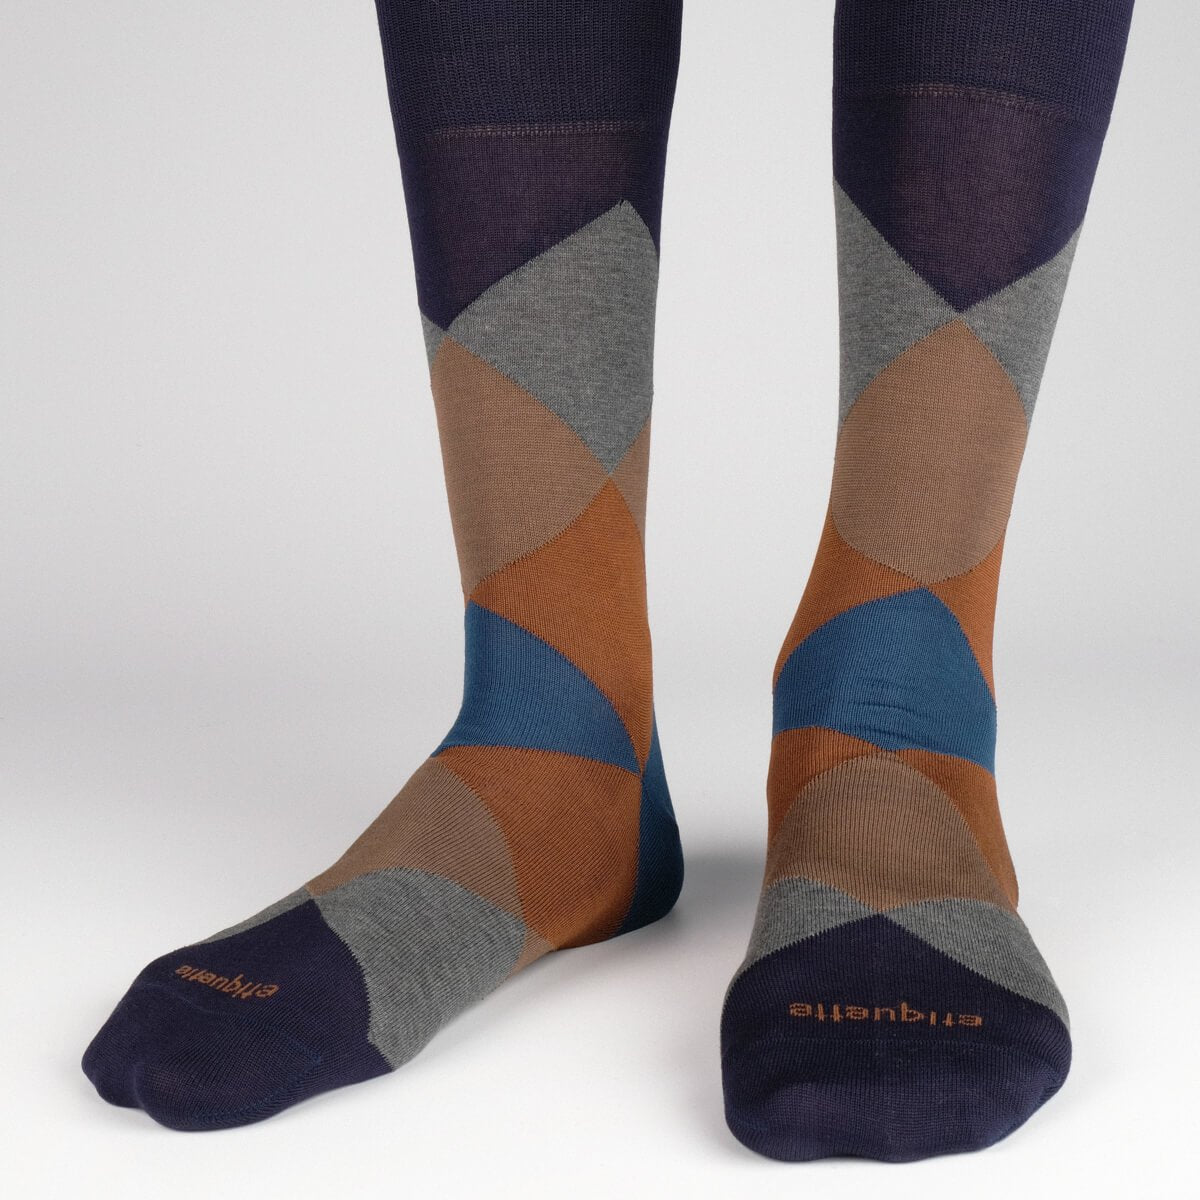 Harlequin - Dark Blue - Mens Socks | Etiquette Clothiers Global Official